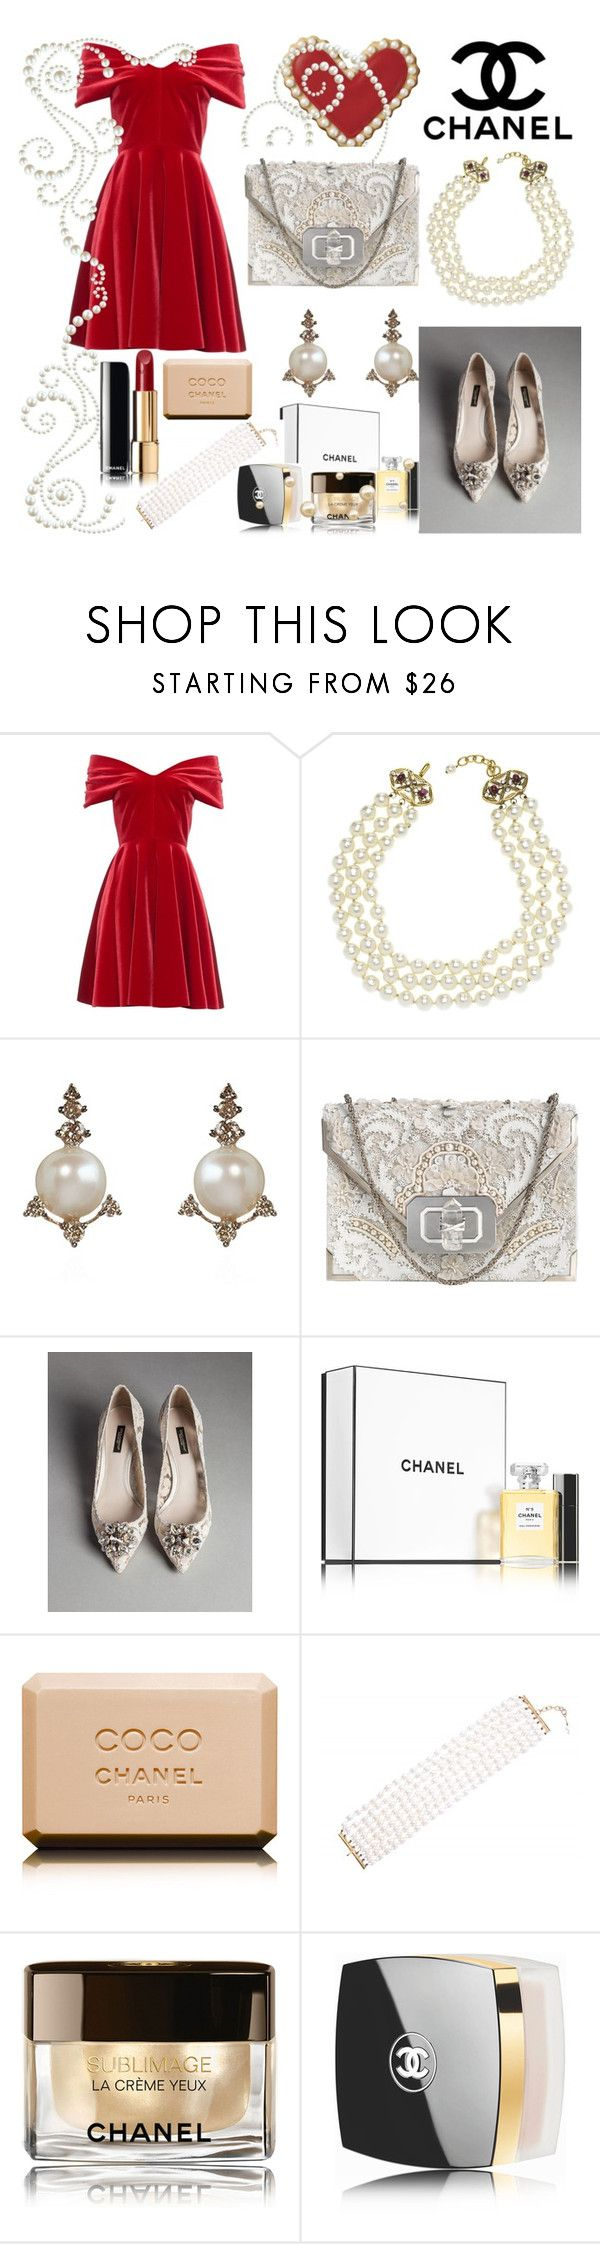 Untitled #183 by denisa-marcu on Polyvore featuring Emilio De La Morena, Dolce&Gabbana, Marchesa, Chanel and Annoushka